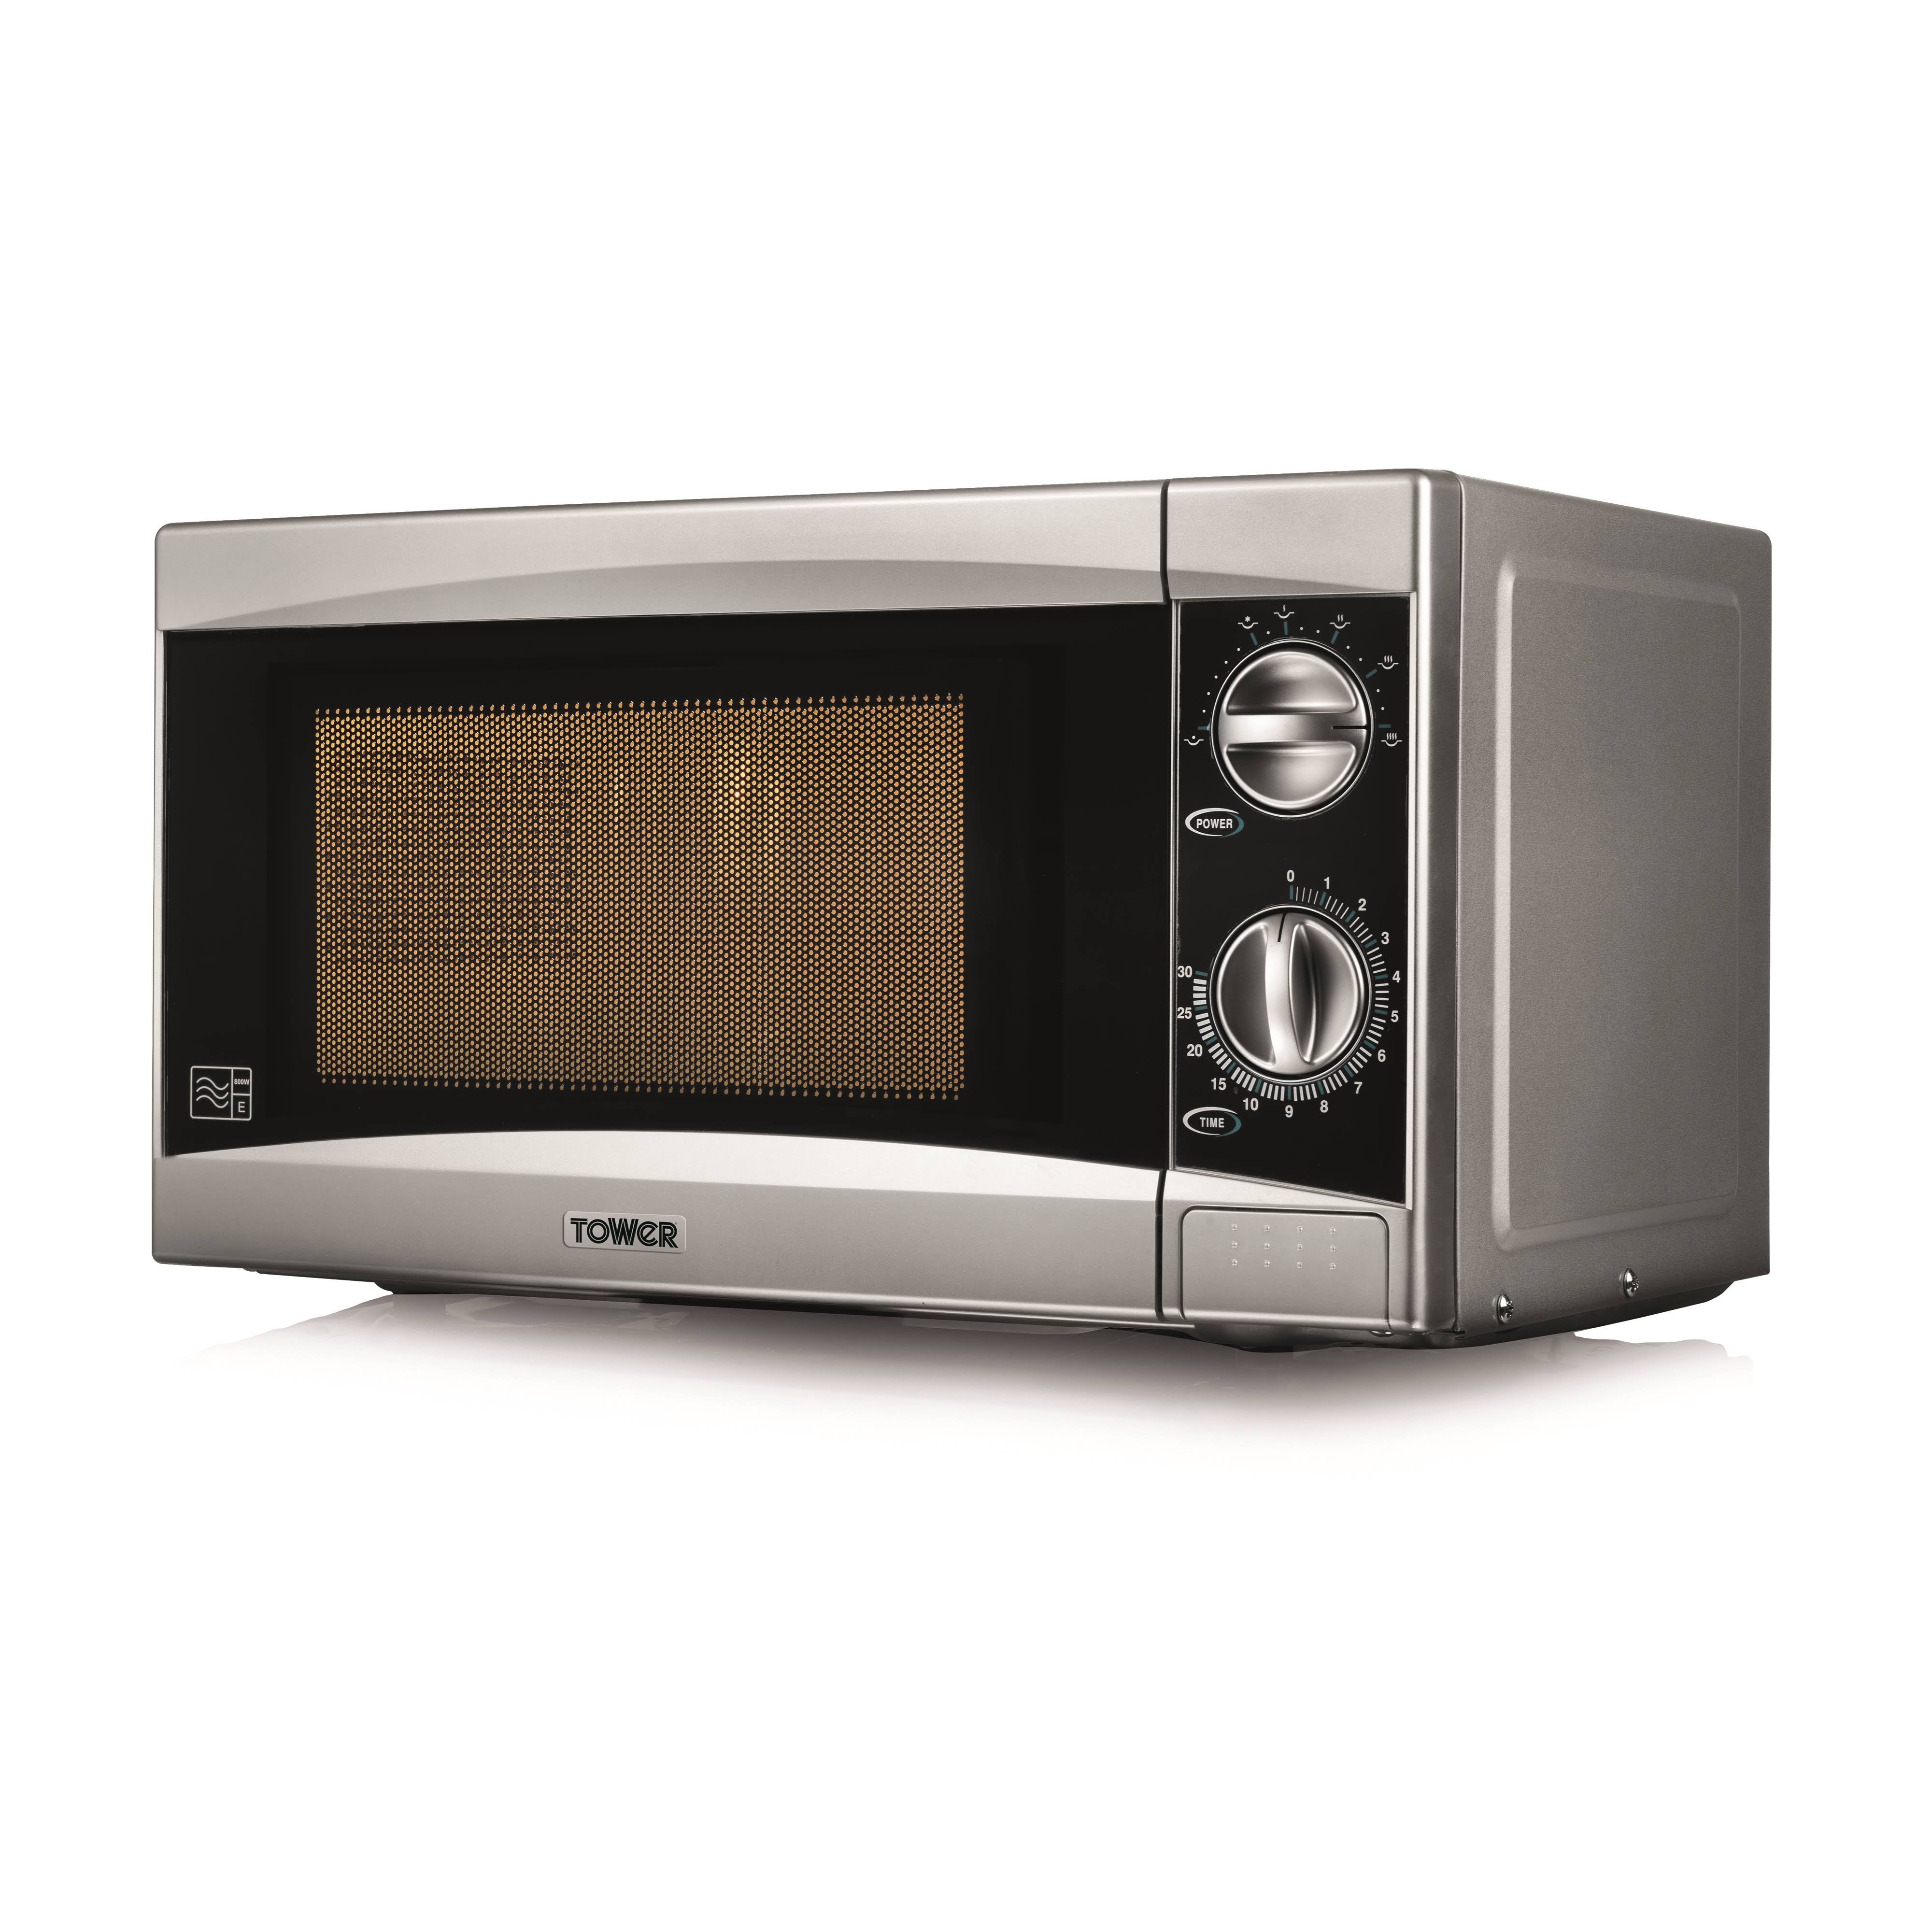 Tower T24001 Microwave, 800 W, 20 L - Silver Stainless Steel